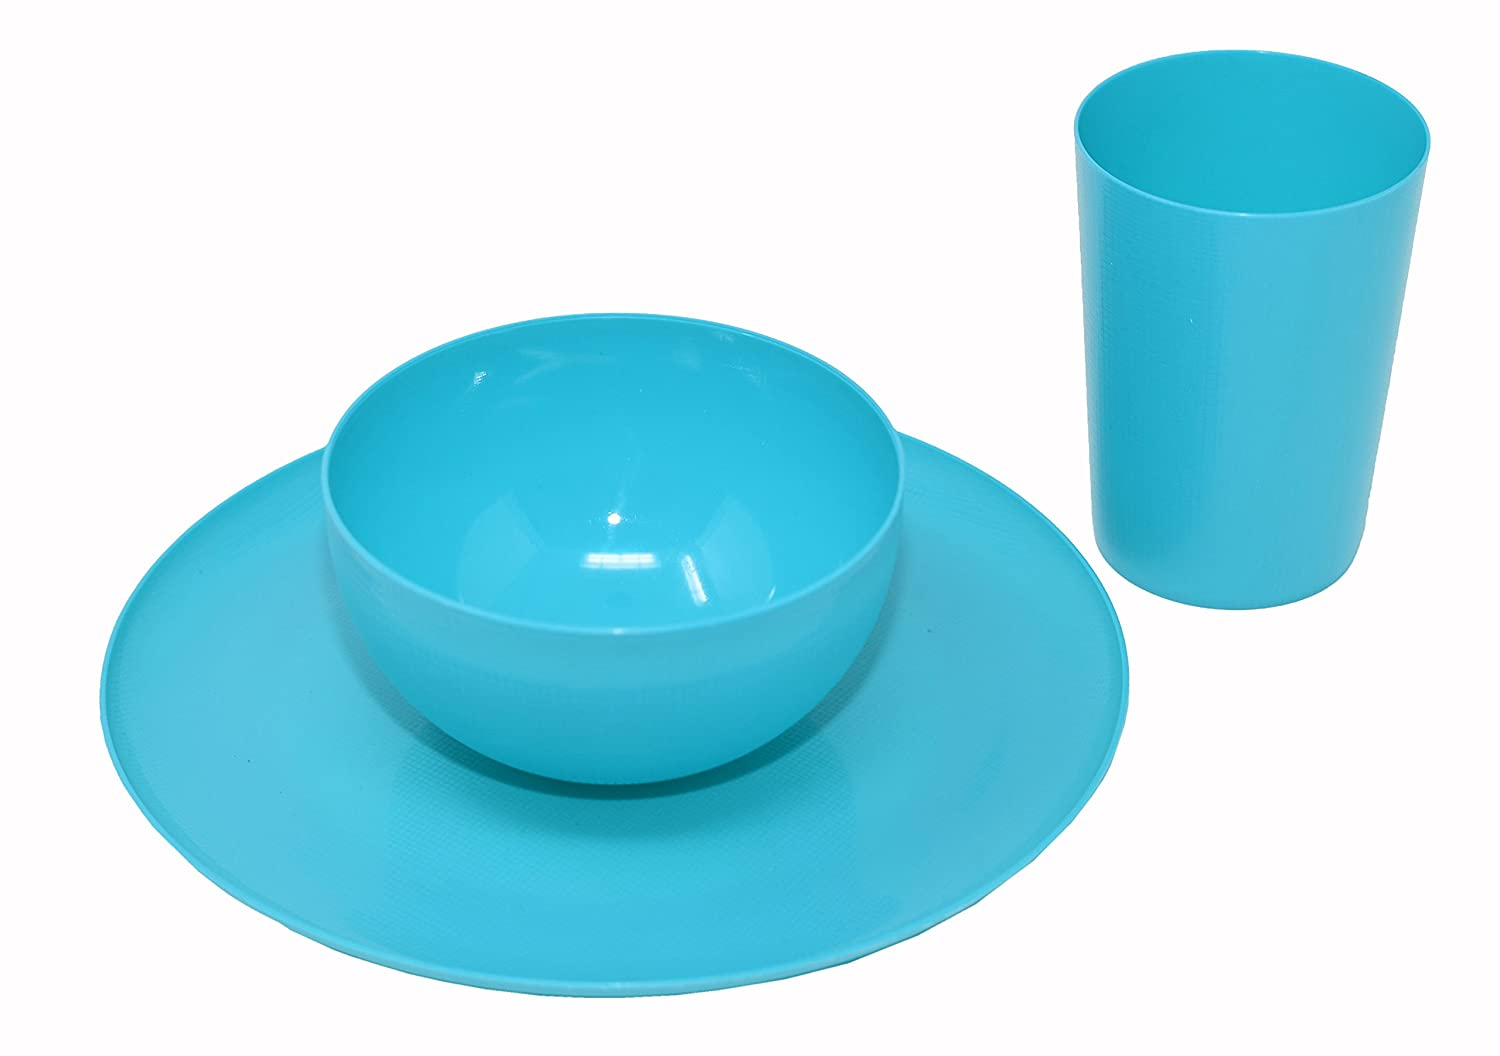 Amazon.com: 12 Piece Plastic Dish Set. Colorful Plastic Plates ...